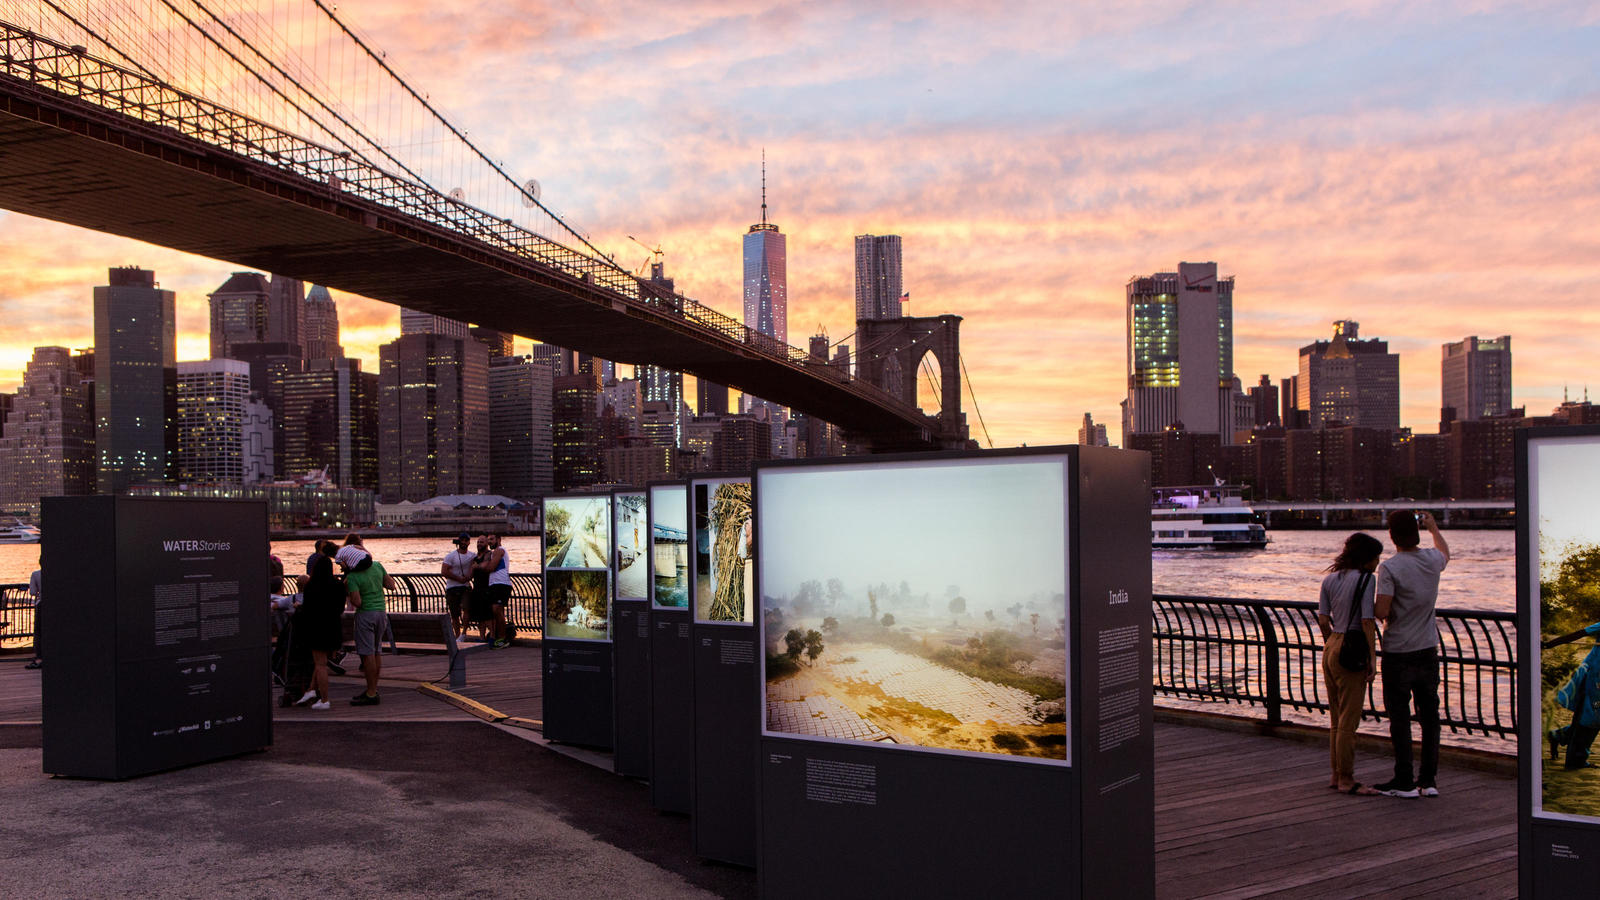 HSBC Water Program photography exhibit 'Water Stories' at Brooklyn Bridge, New York - September 2016.